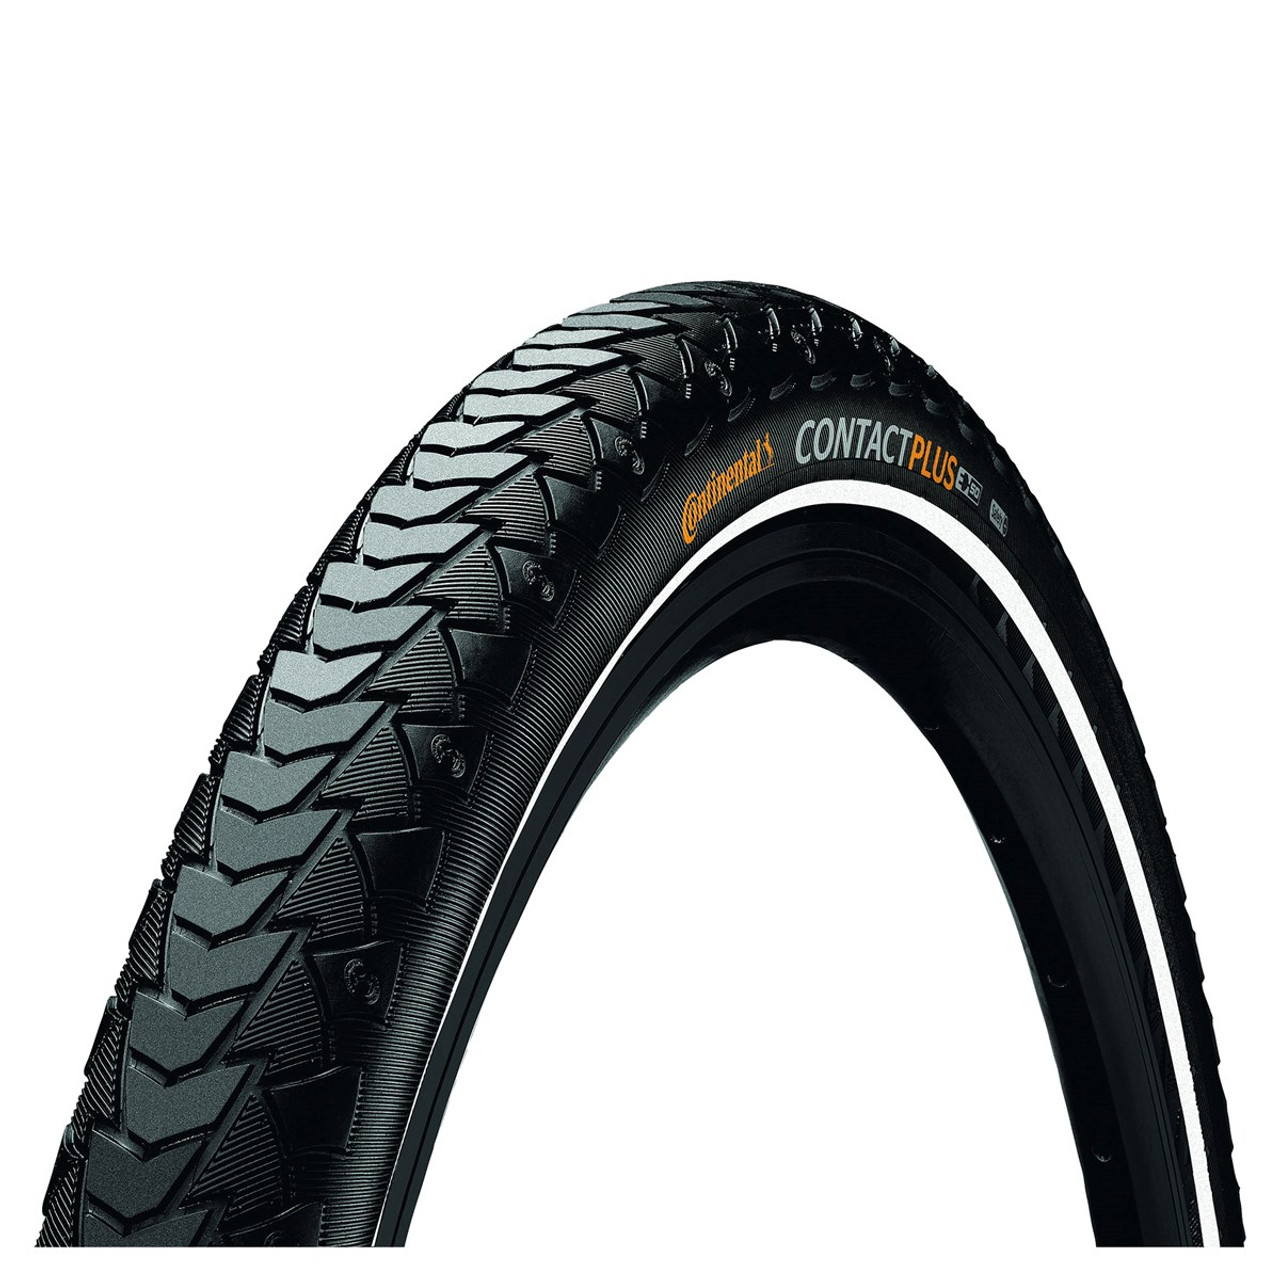 Continental Contact Plus Wired Tyre In Black/Reflex